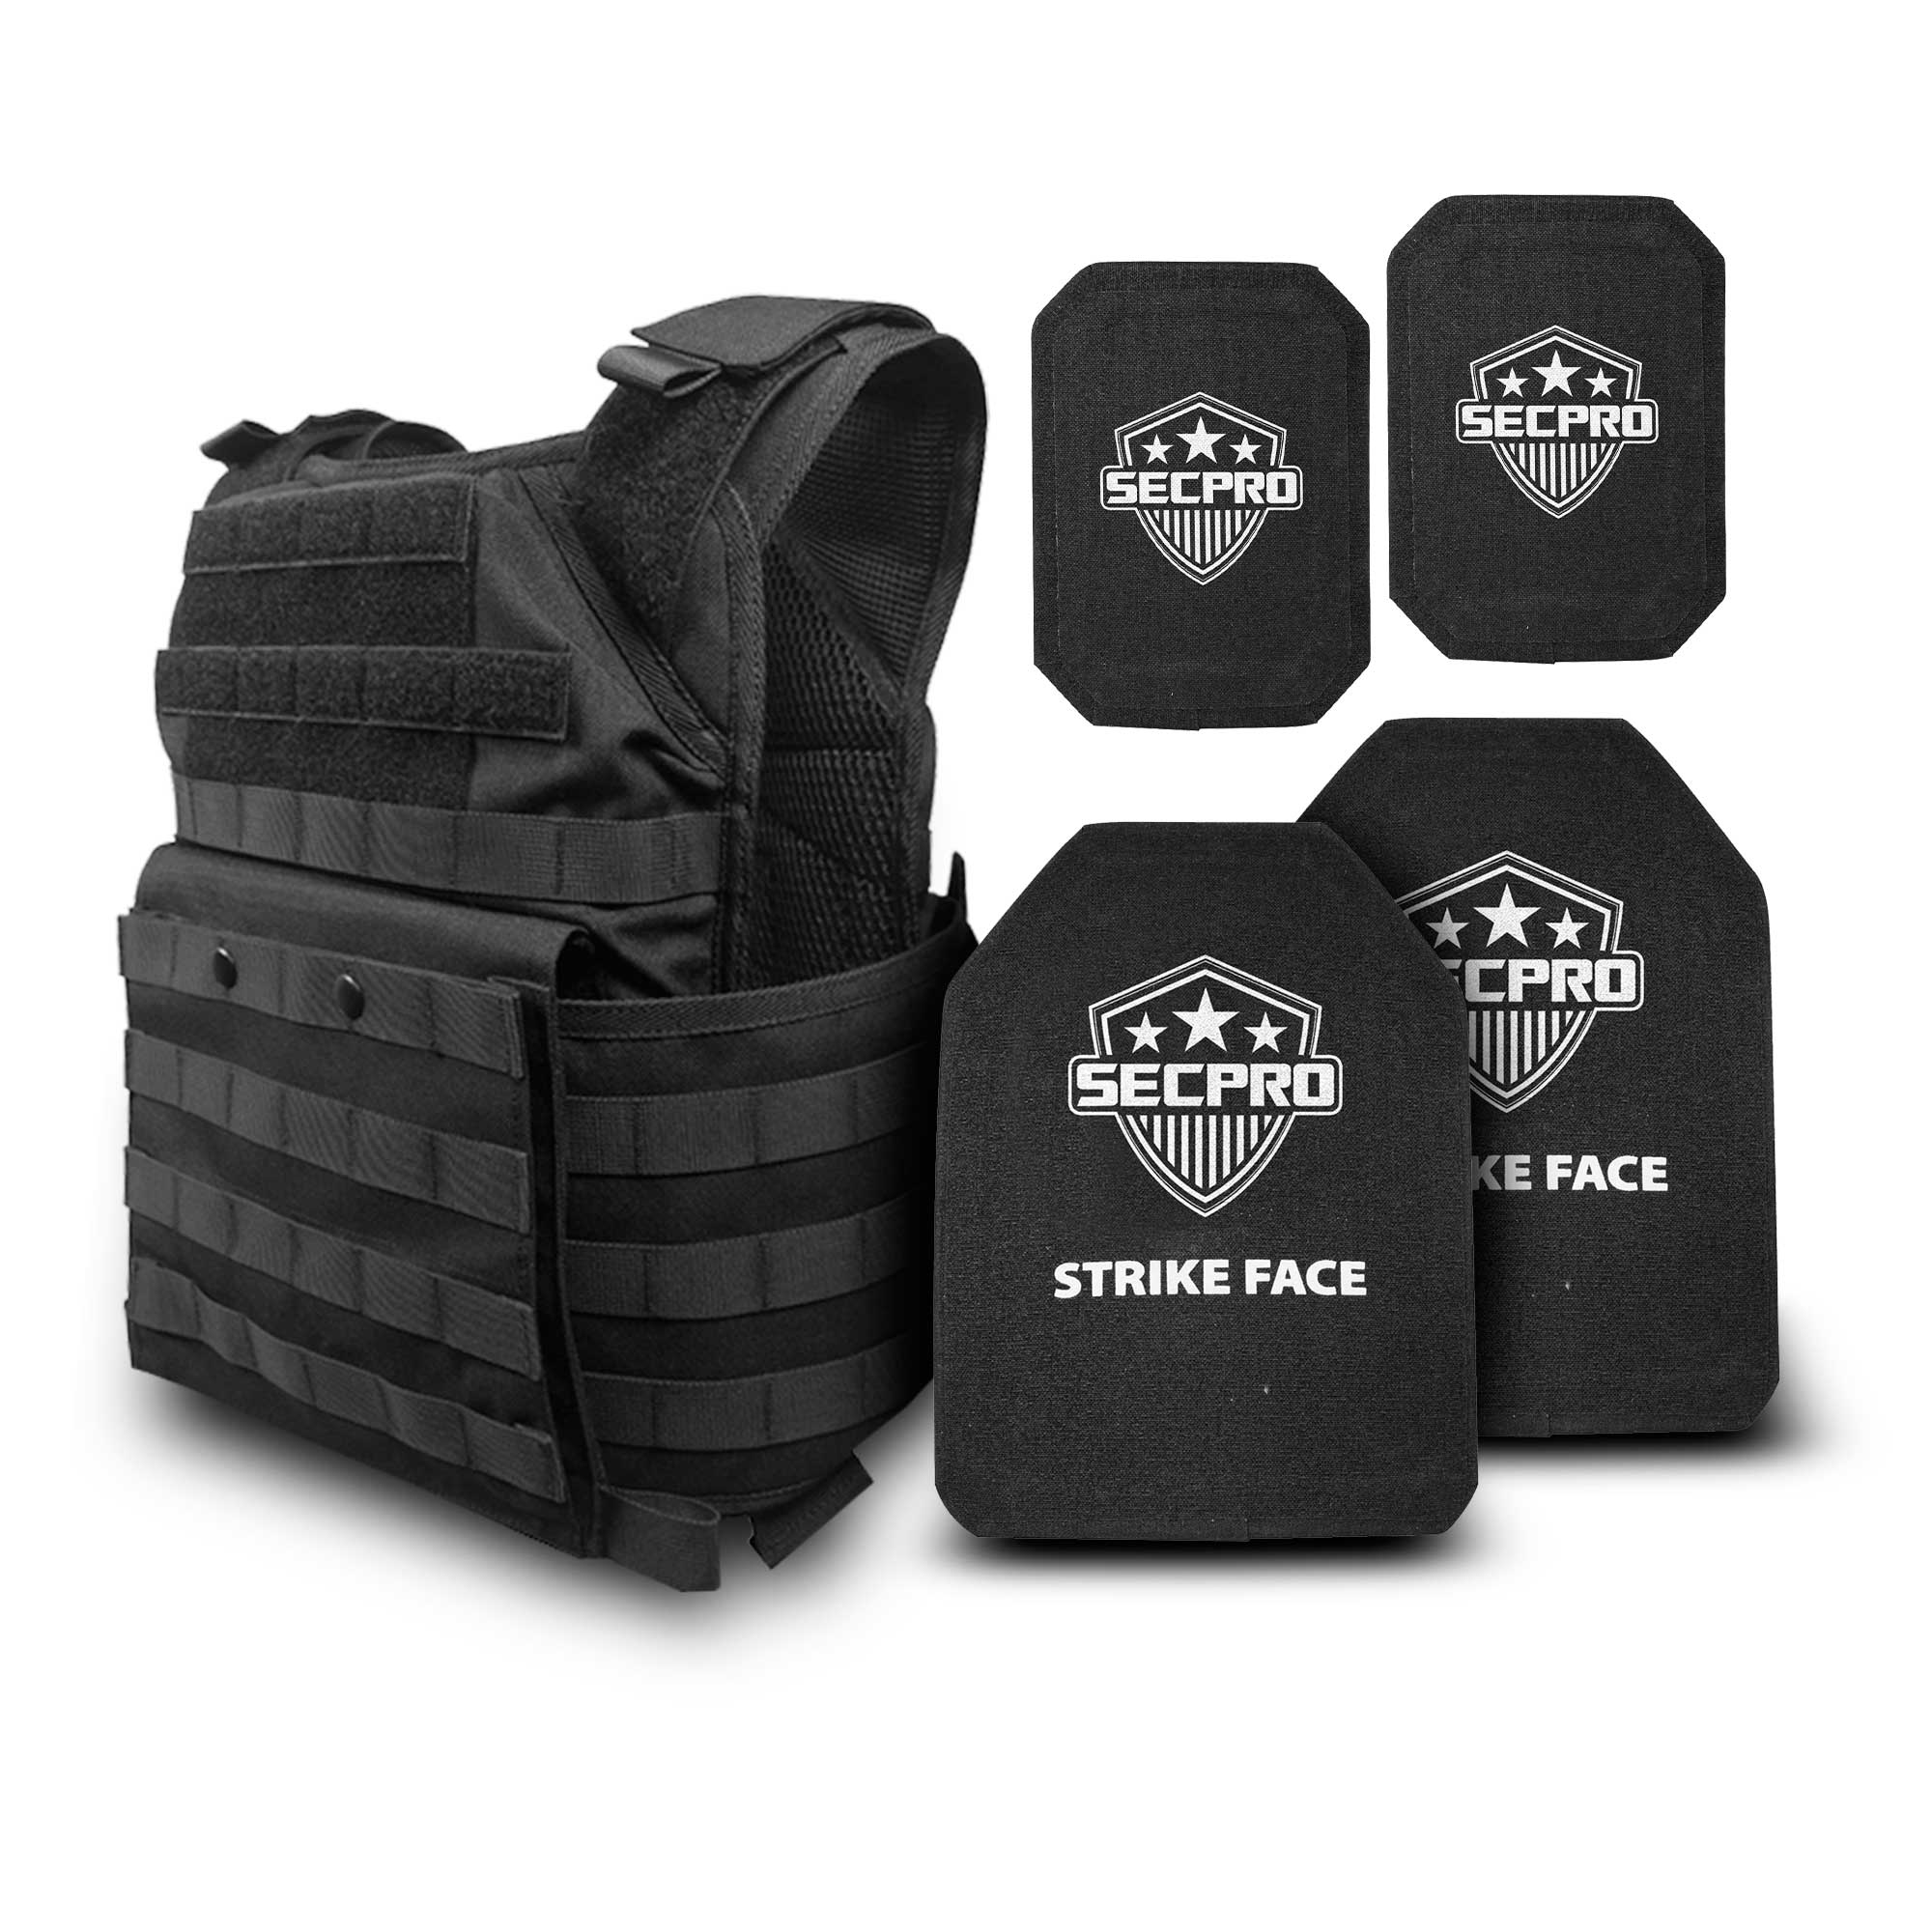 SecPro Deluxe Shooter's Package - Spartan Plate Carrier w/ Level IV Torso and Side Plates